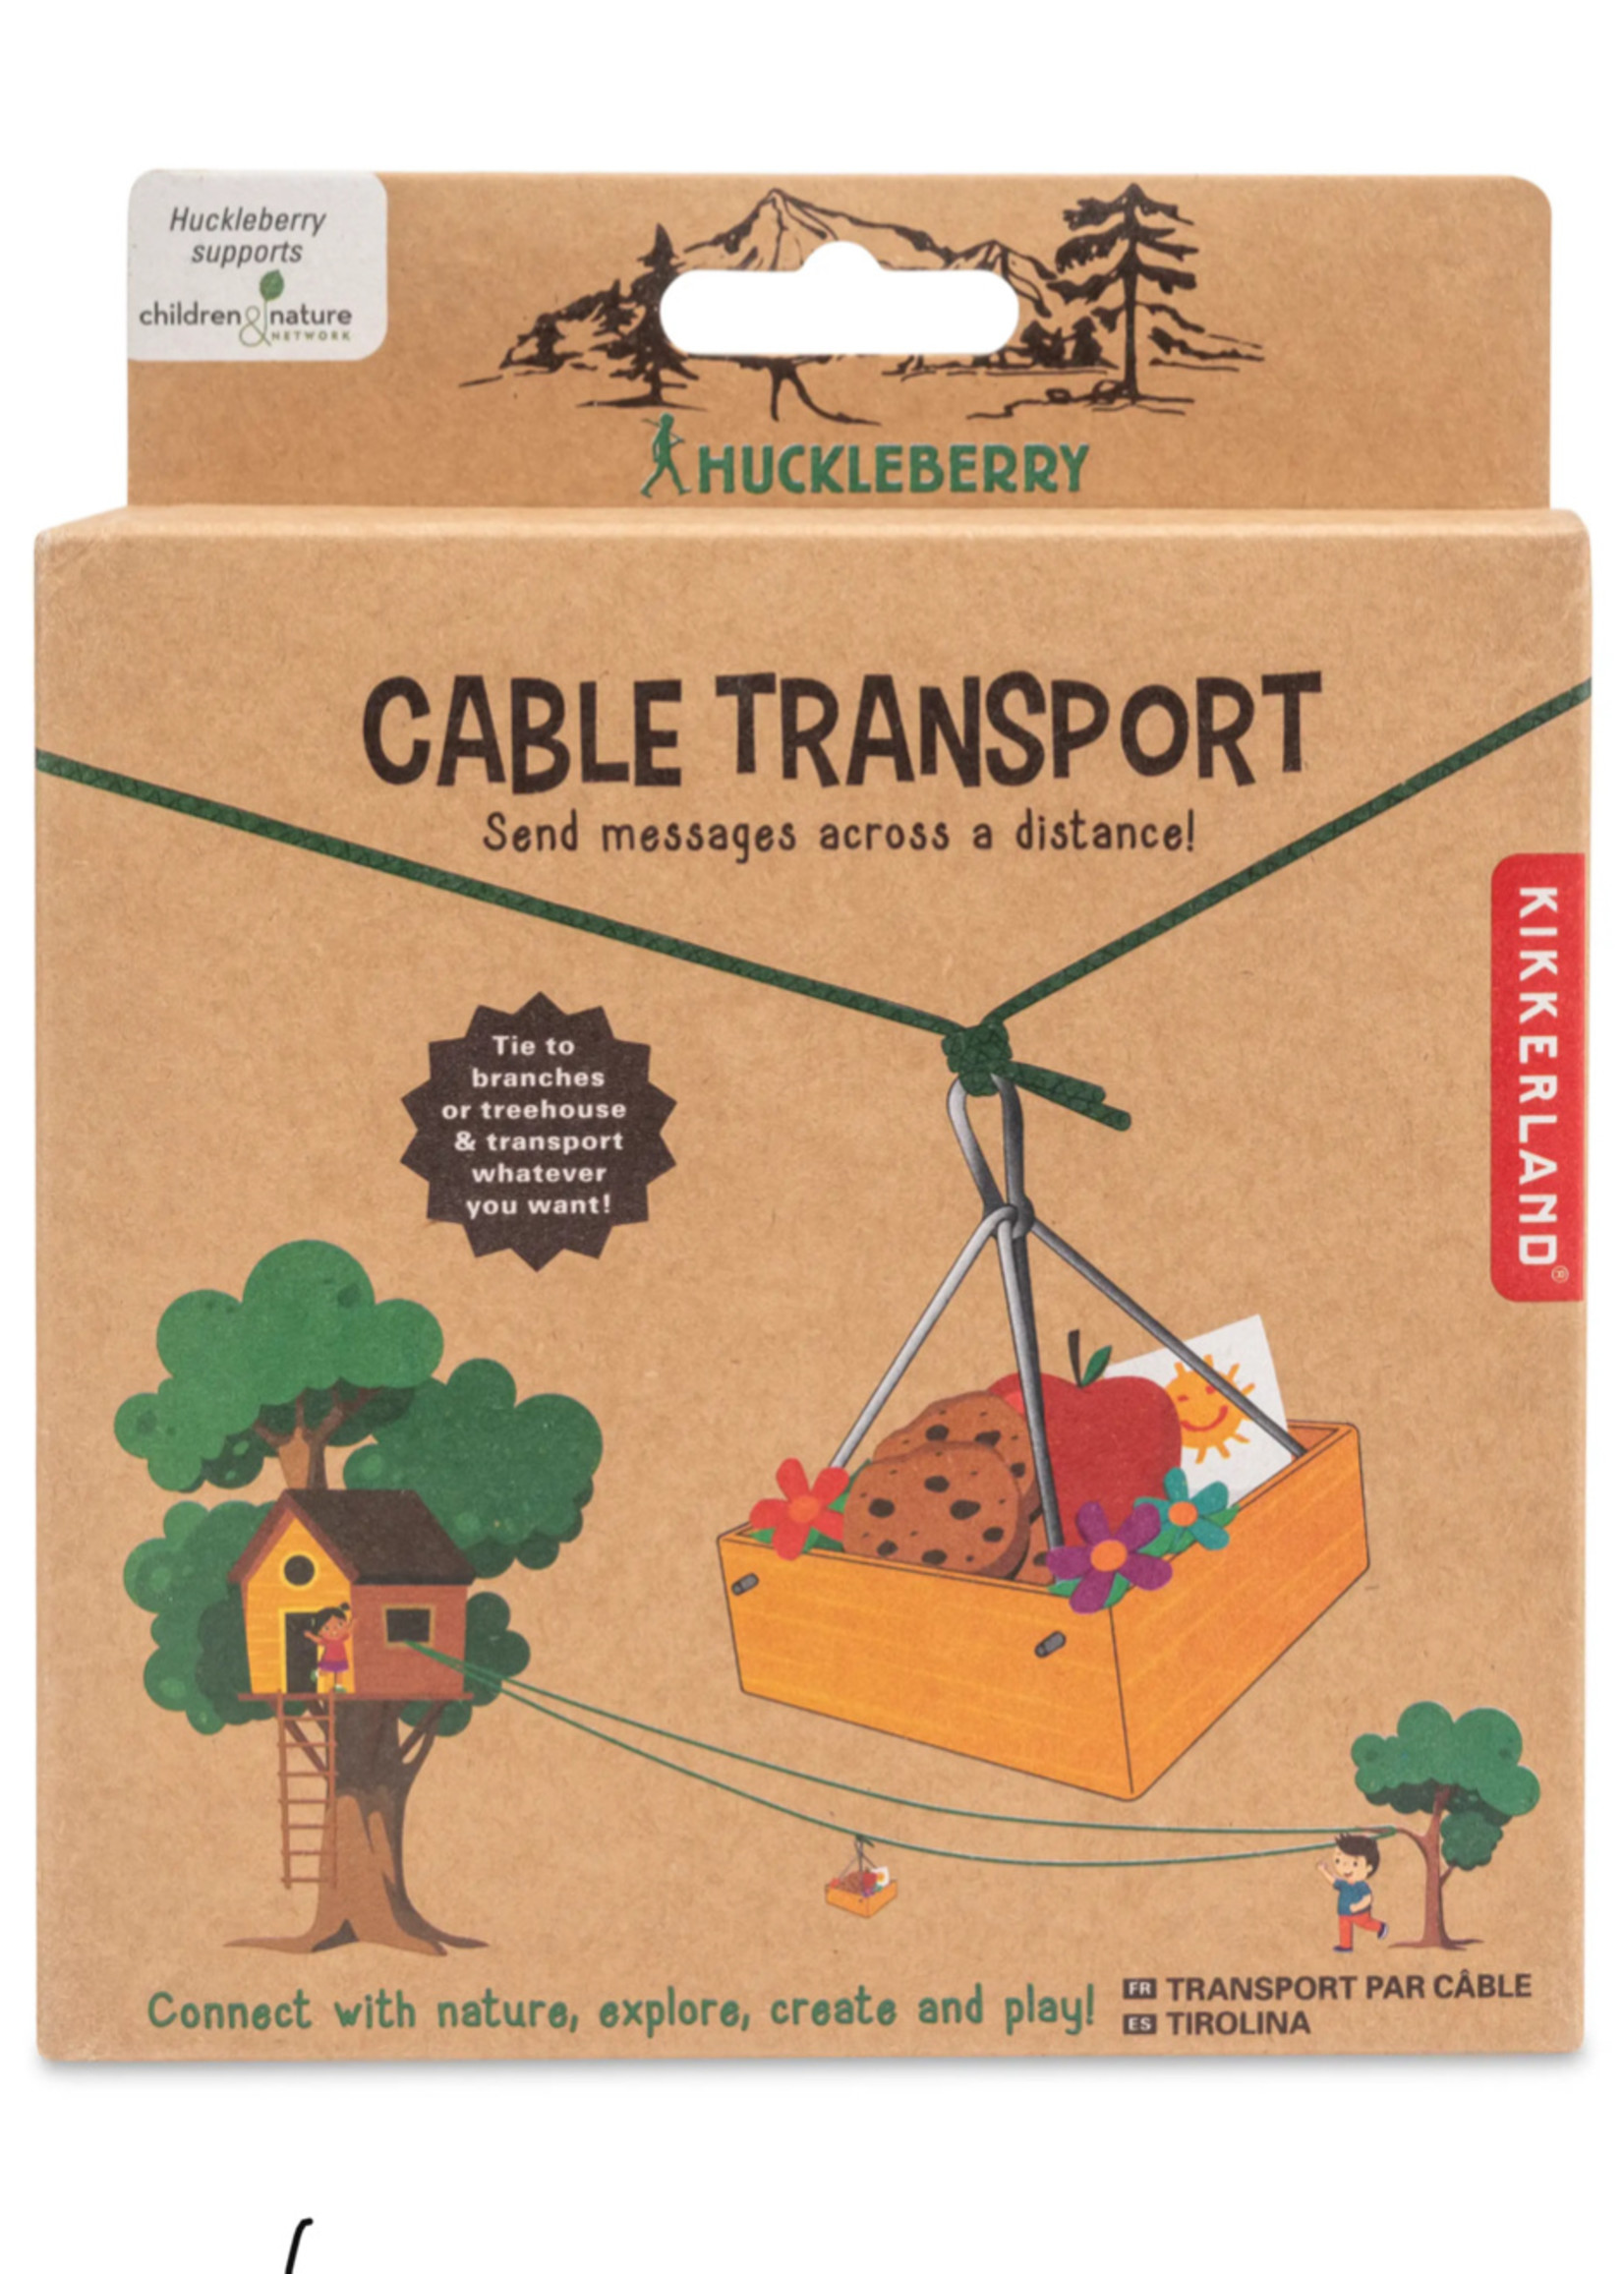 huckleberry by kirkland Huckleberry Cable Transport